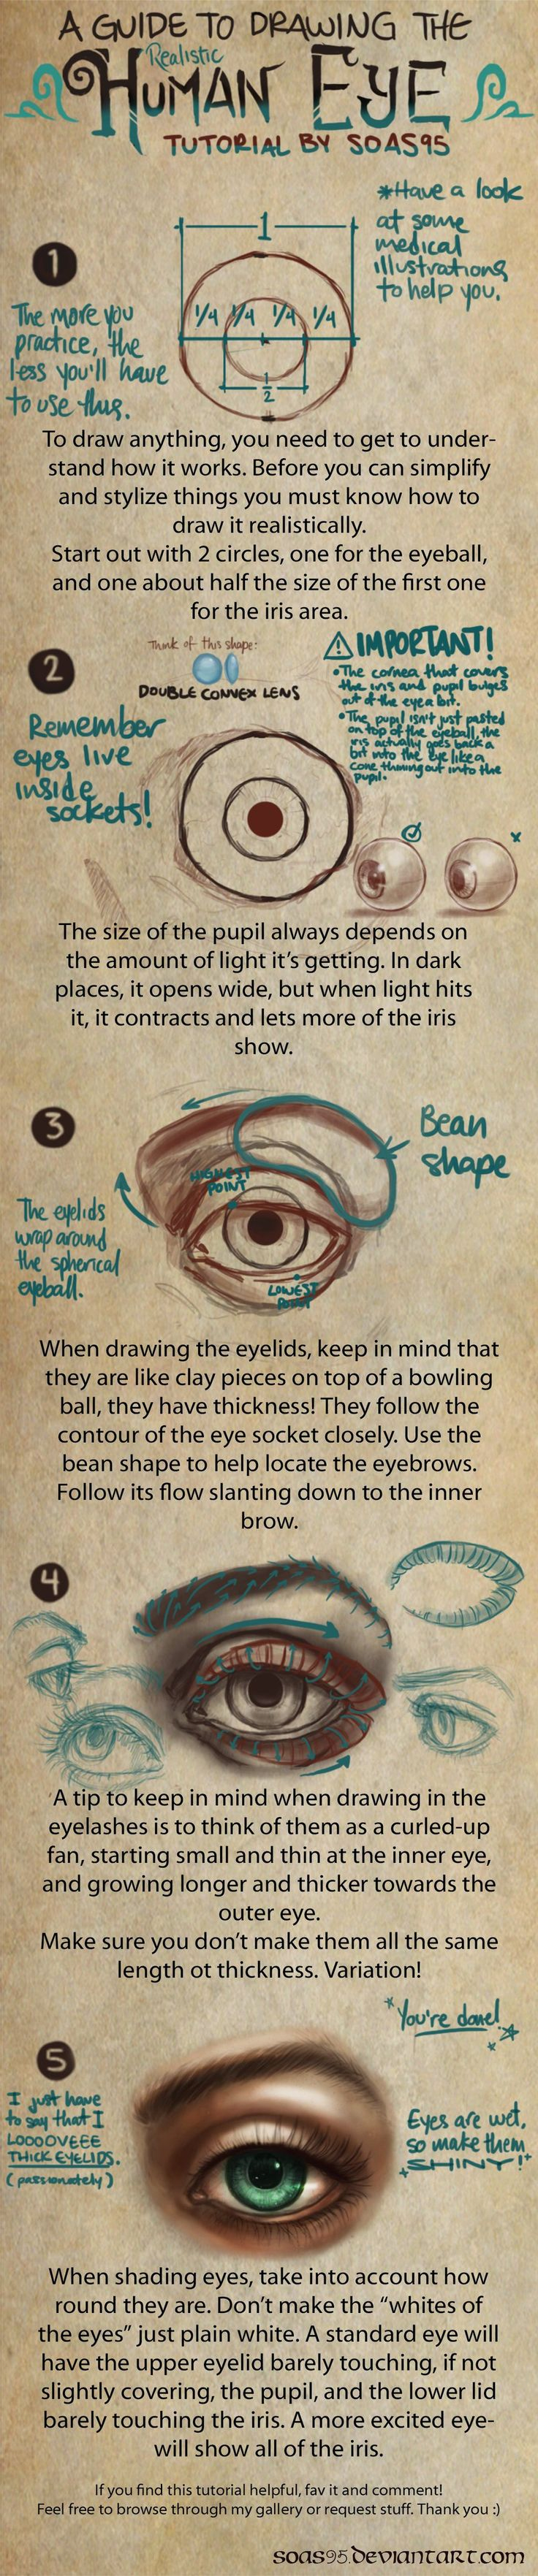 Human Eye- TUTORIAL by soas95.deviantart.com on @deviantART